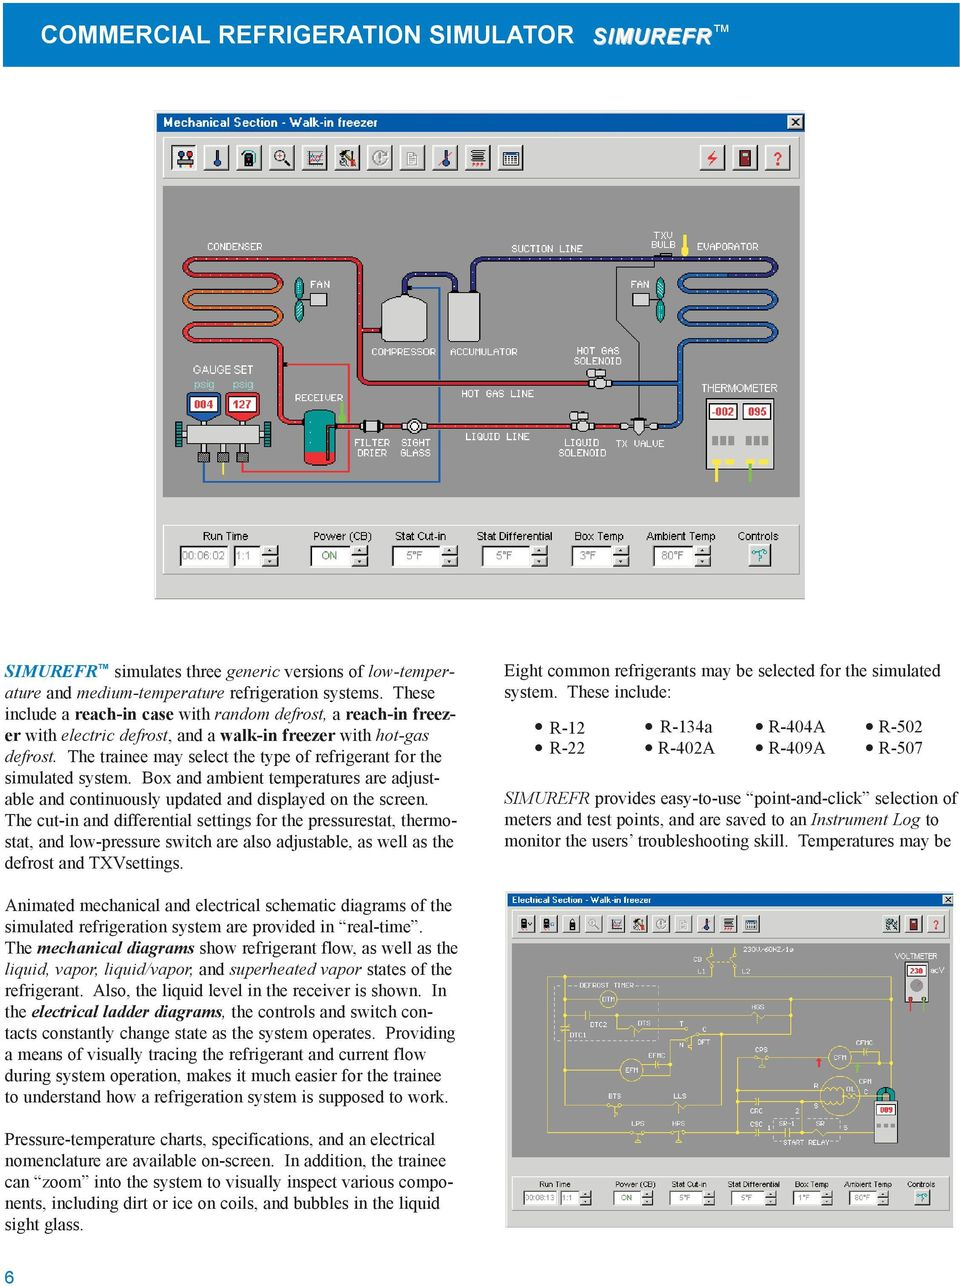 Simulation Software For Hvacr Training Simulator Systems Pdf Is Very Useful When Simulating This Type Of Circuit Diagram The Trainee May Select Refrigerant Simulated System Box And Ambient